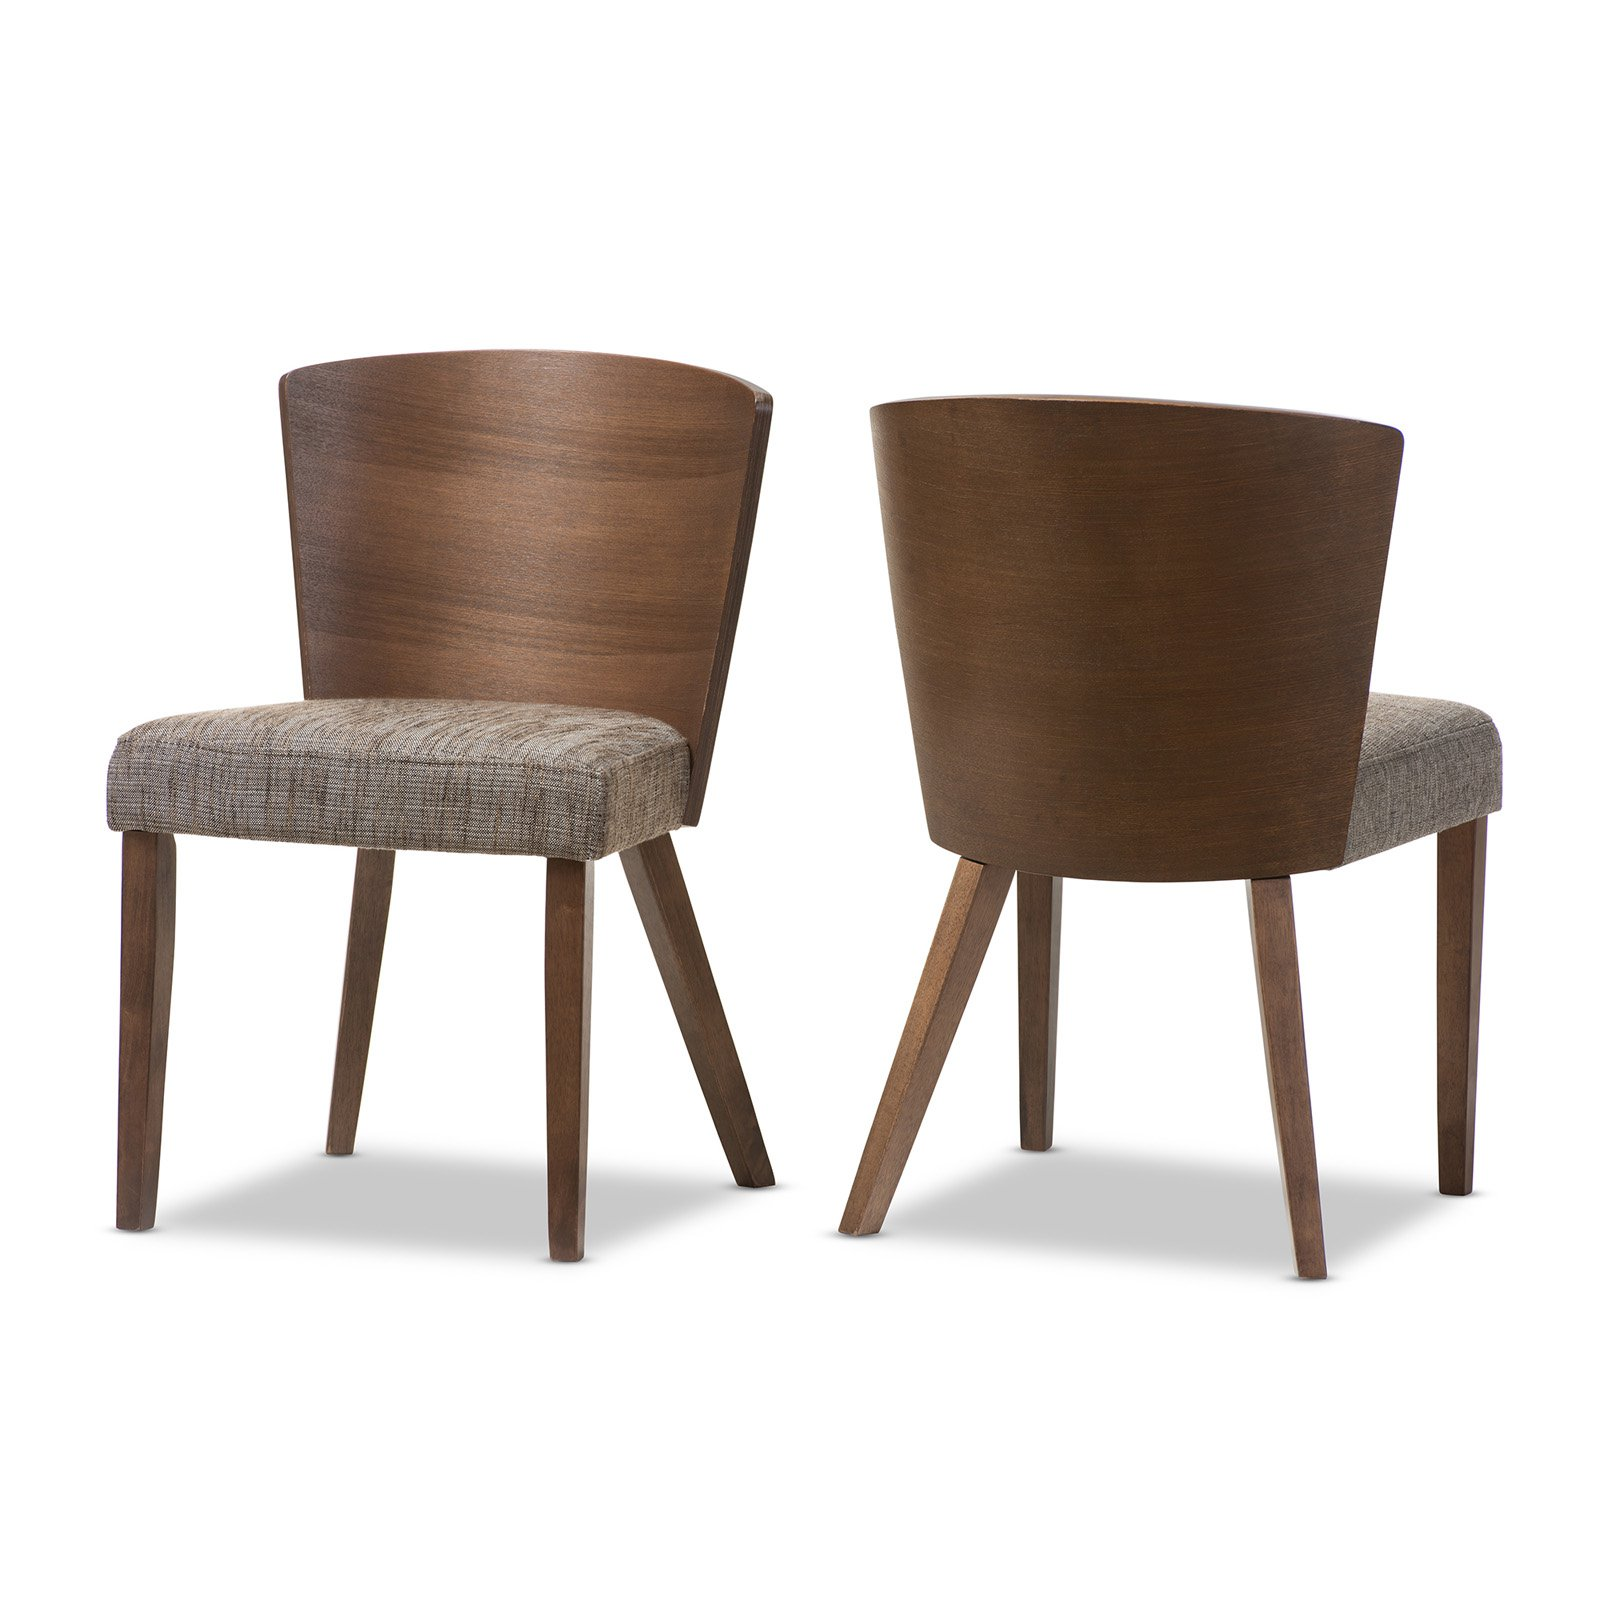 Baxton Studio Sparrow Dining Chair - Set of 2